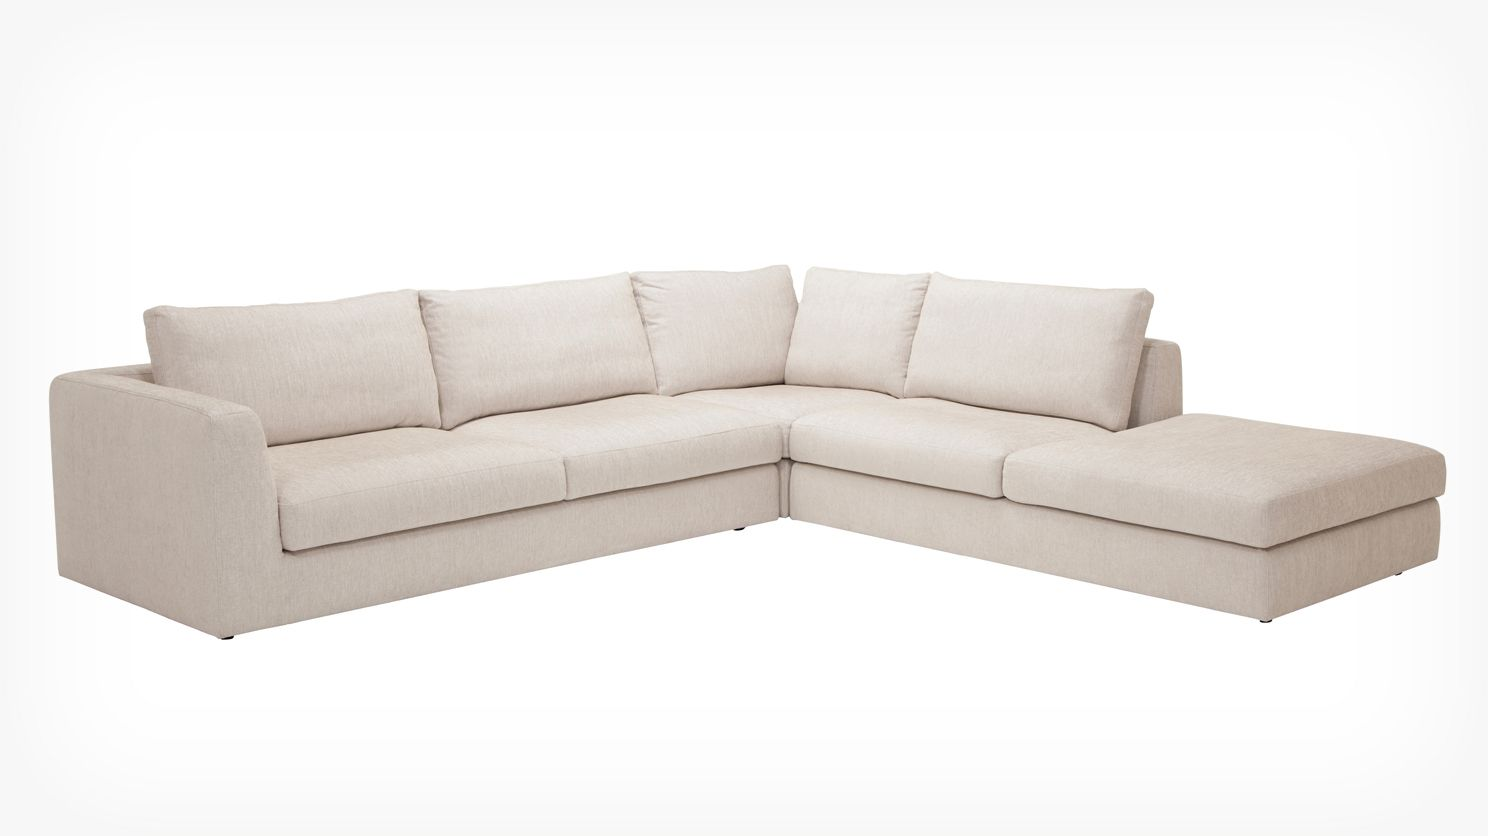 Cello 3 Piece Sectional Sofa With Backless Chaise Fabric Folly Brutalist Haus Pinterest